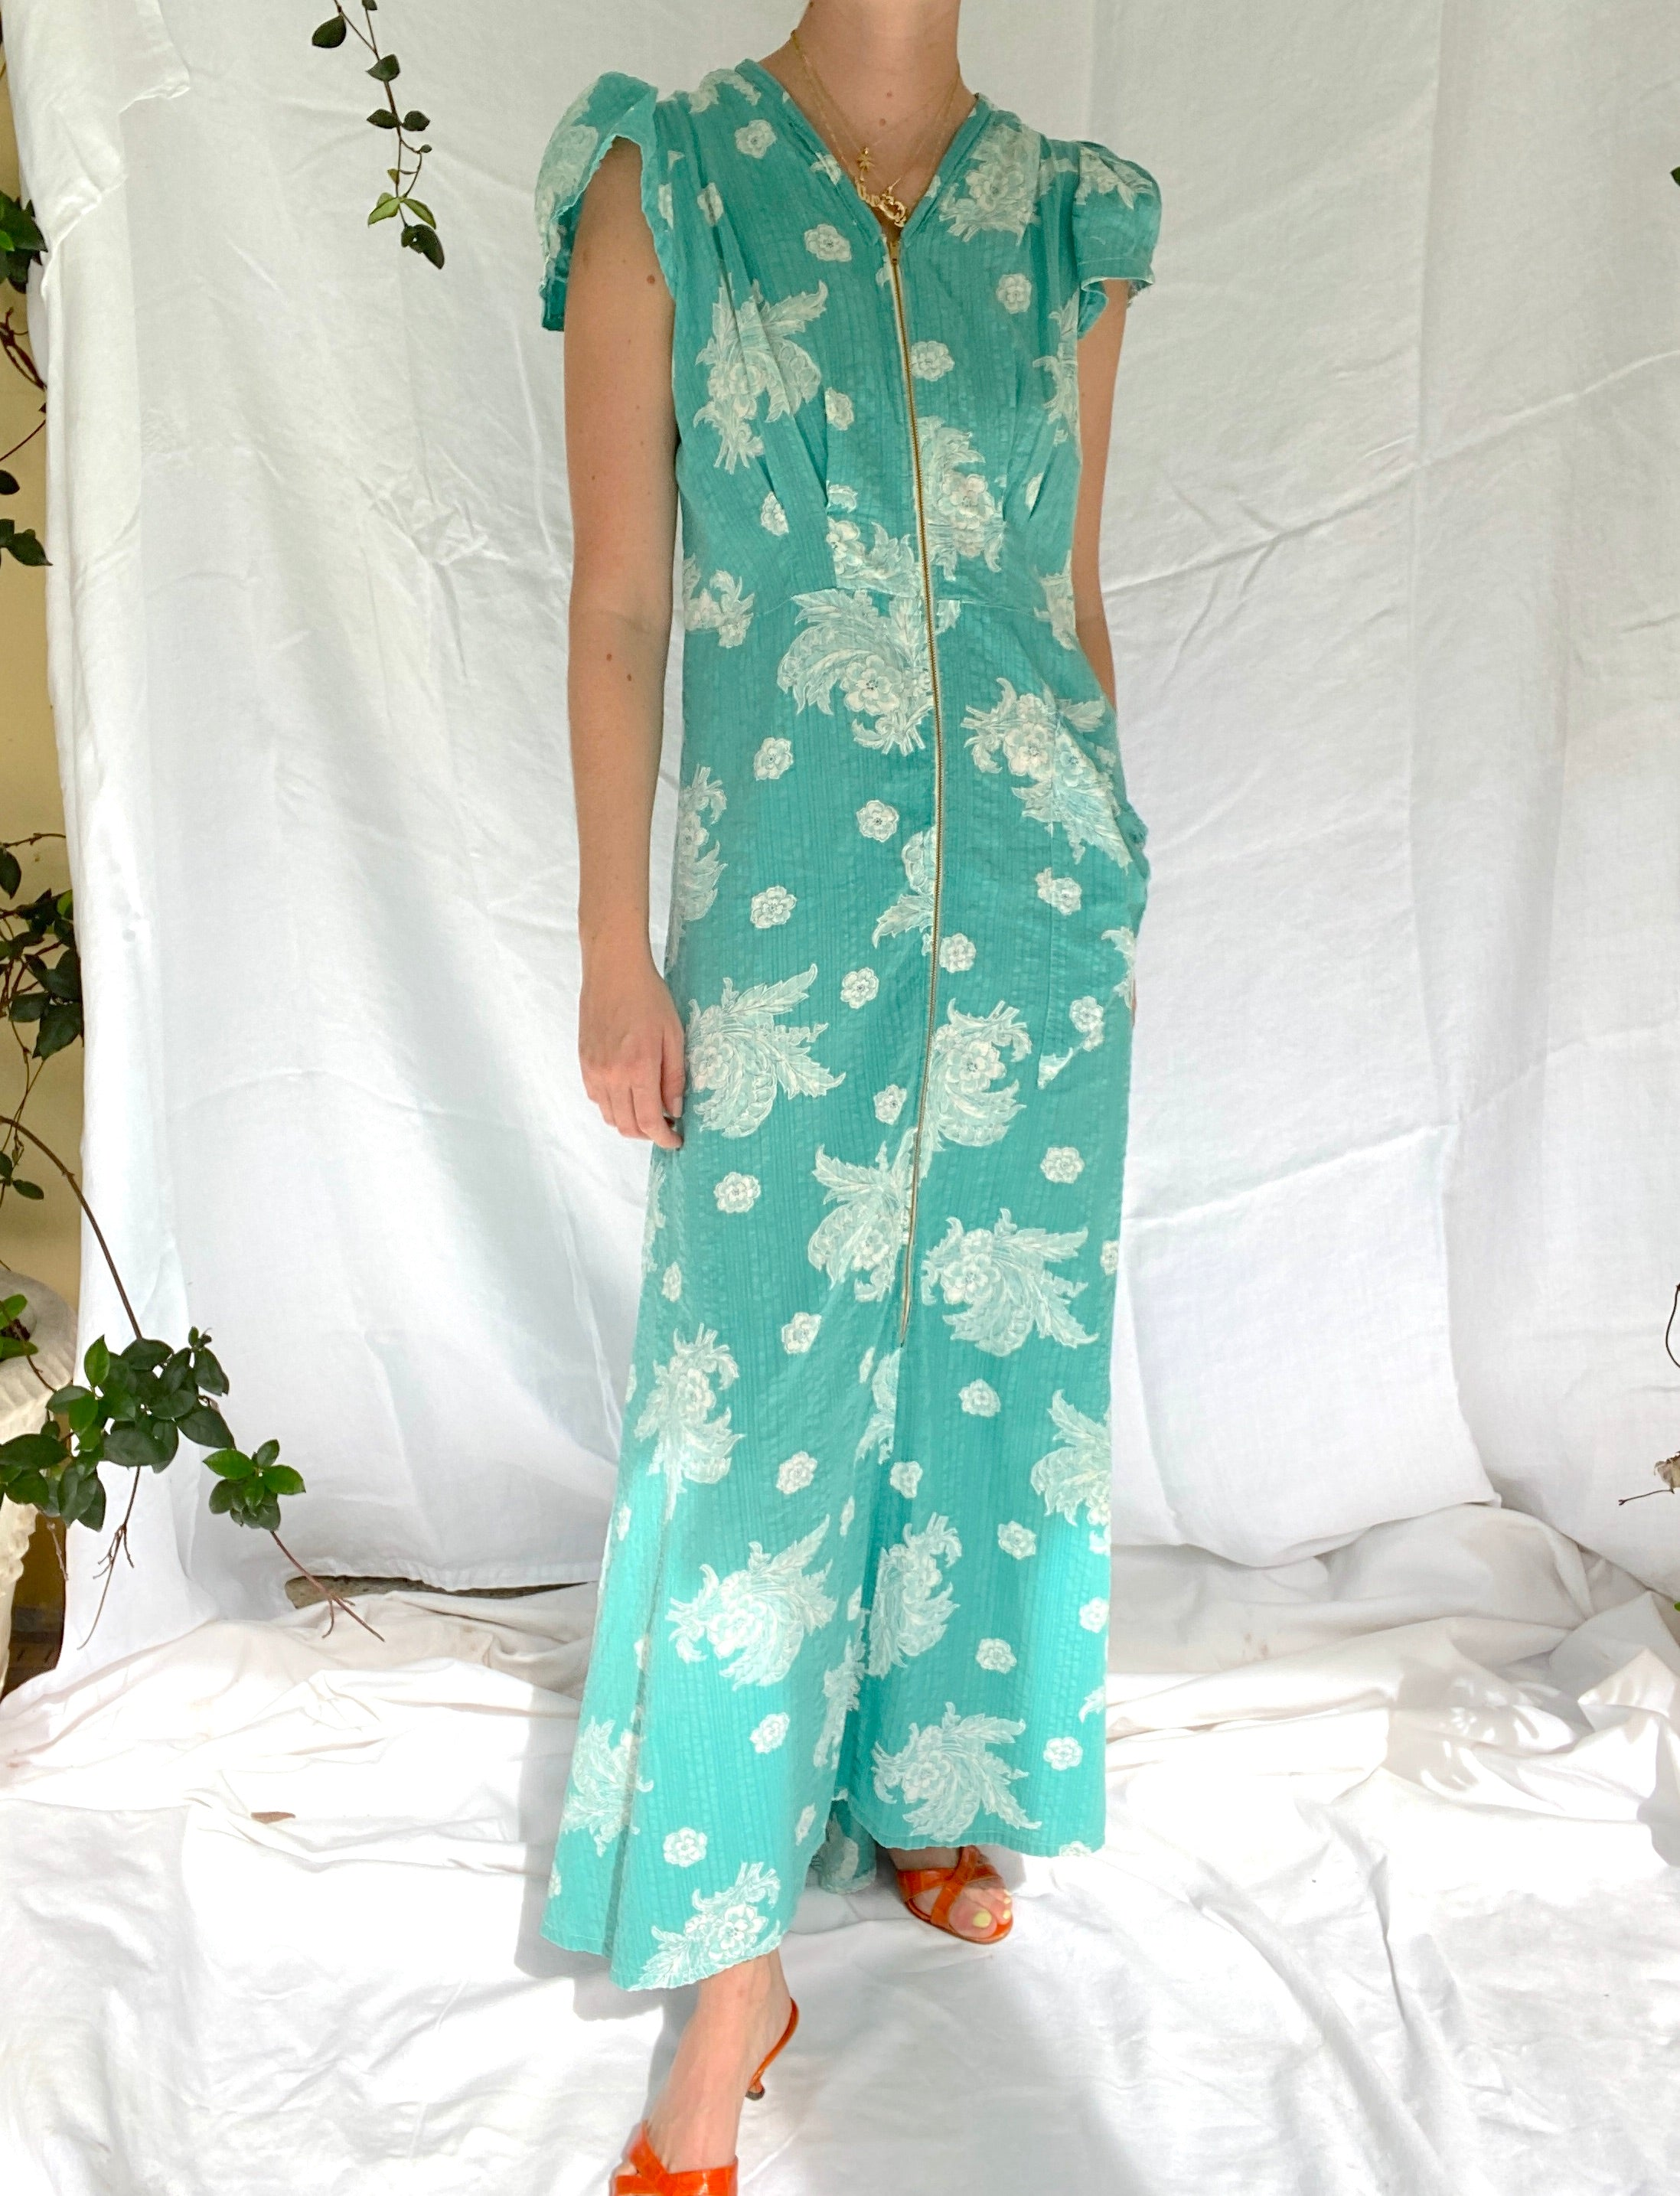 1930's Turquoise 3/4 Zip Floral Print Dress